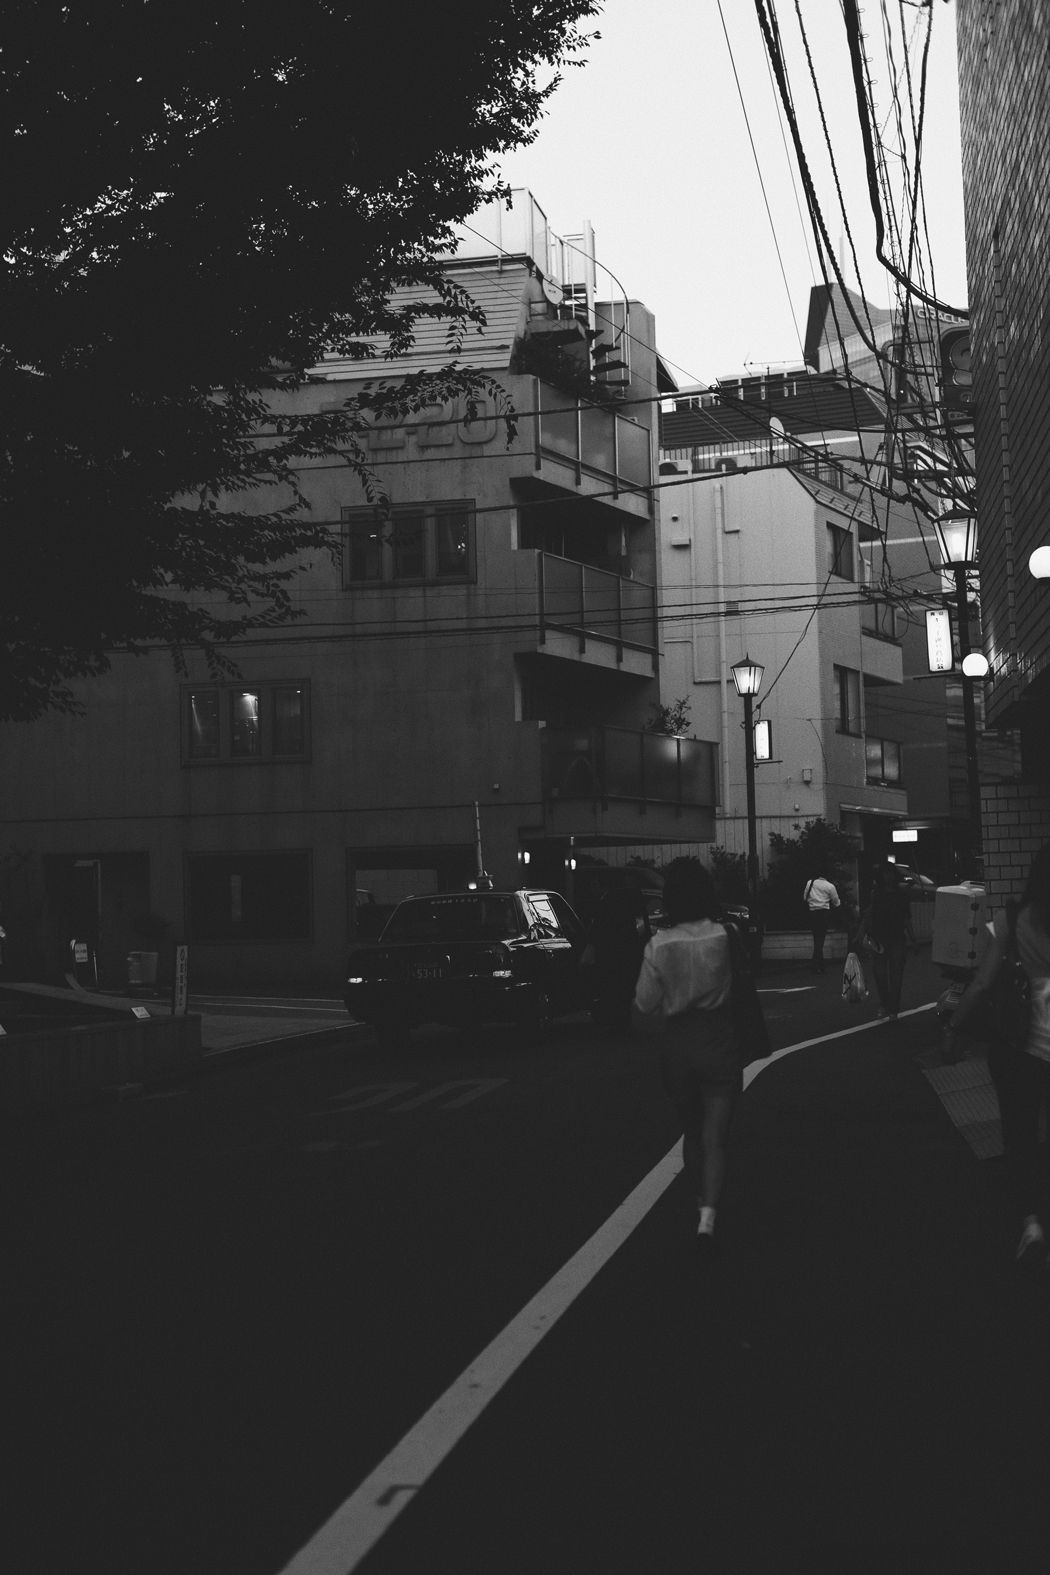 Black white photography · monochrome painting · tokyo · one week in tokyo a visual diary captured in june 2018 by fiona dinkelbach